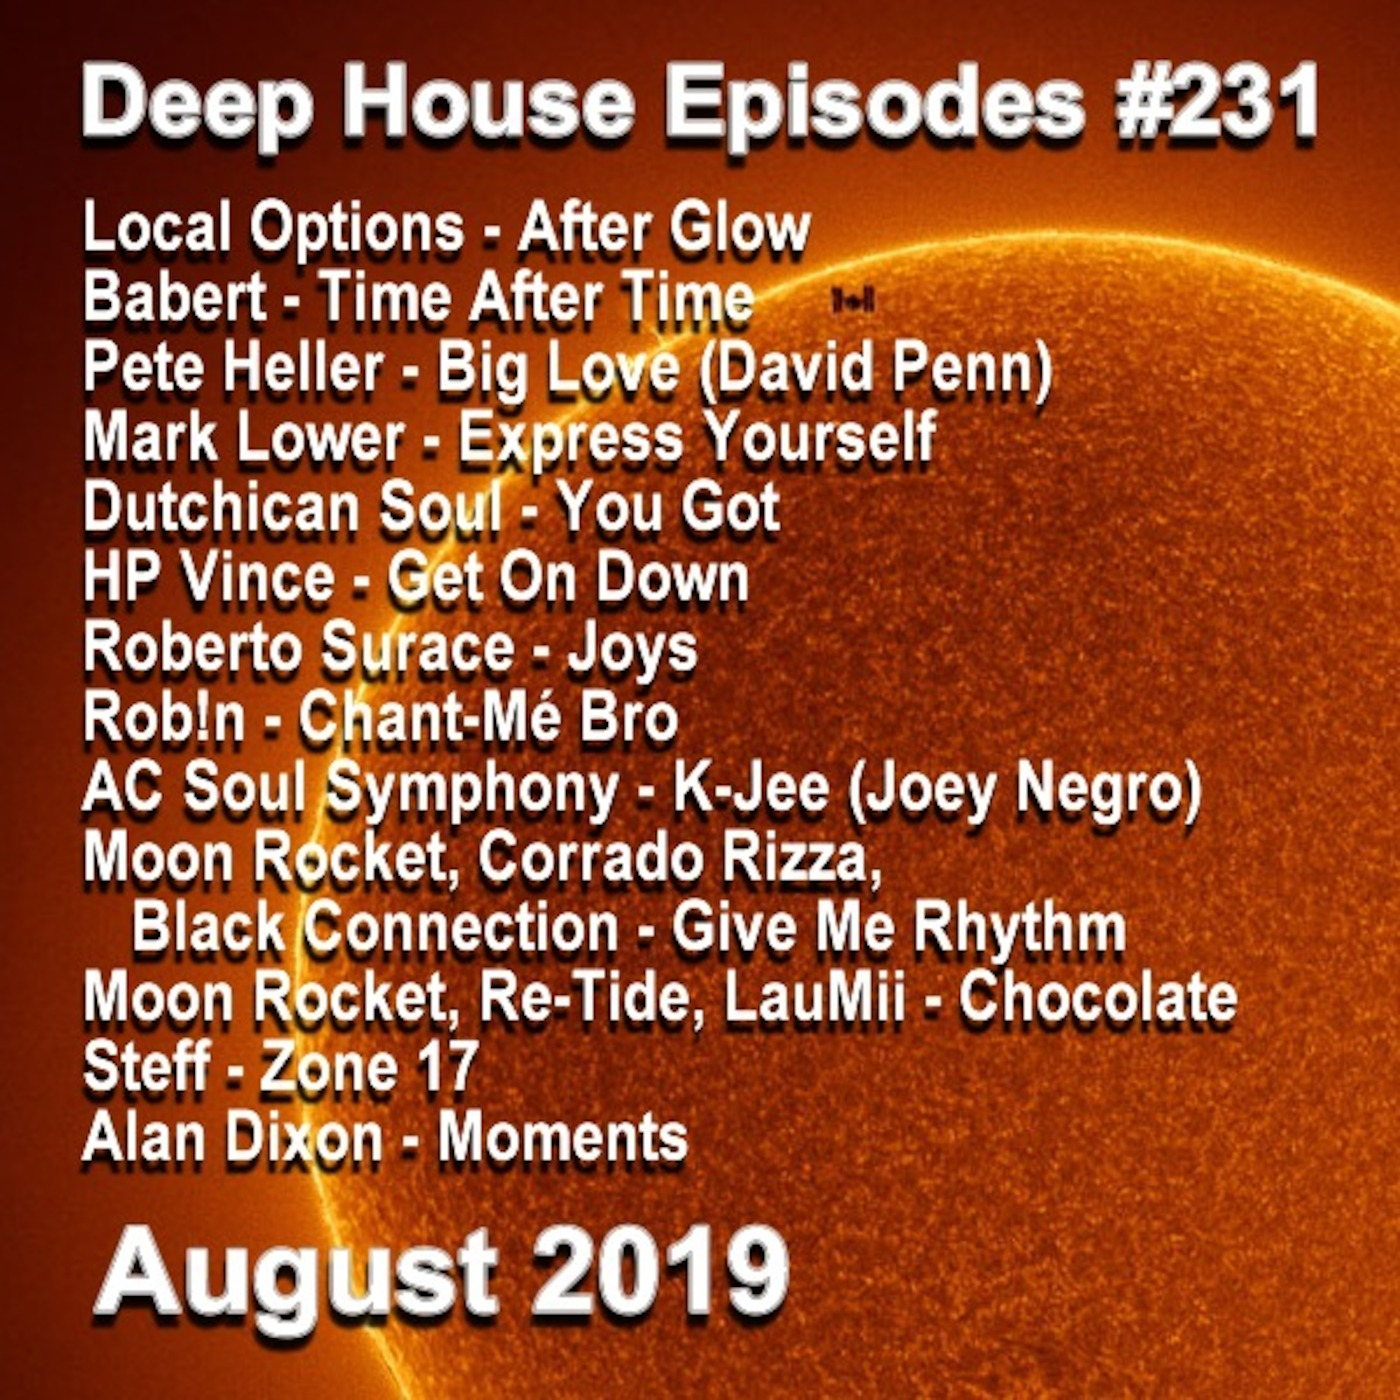 EP231 August 2019 Deep House Episodes podcast